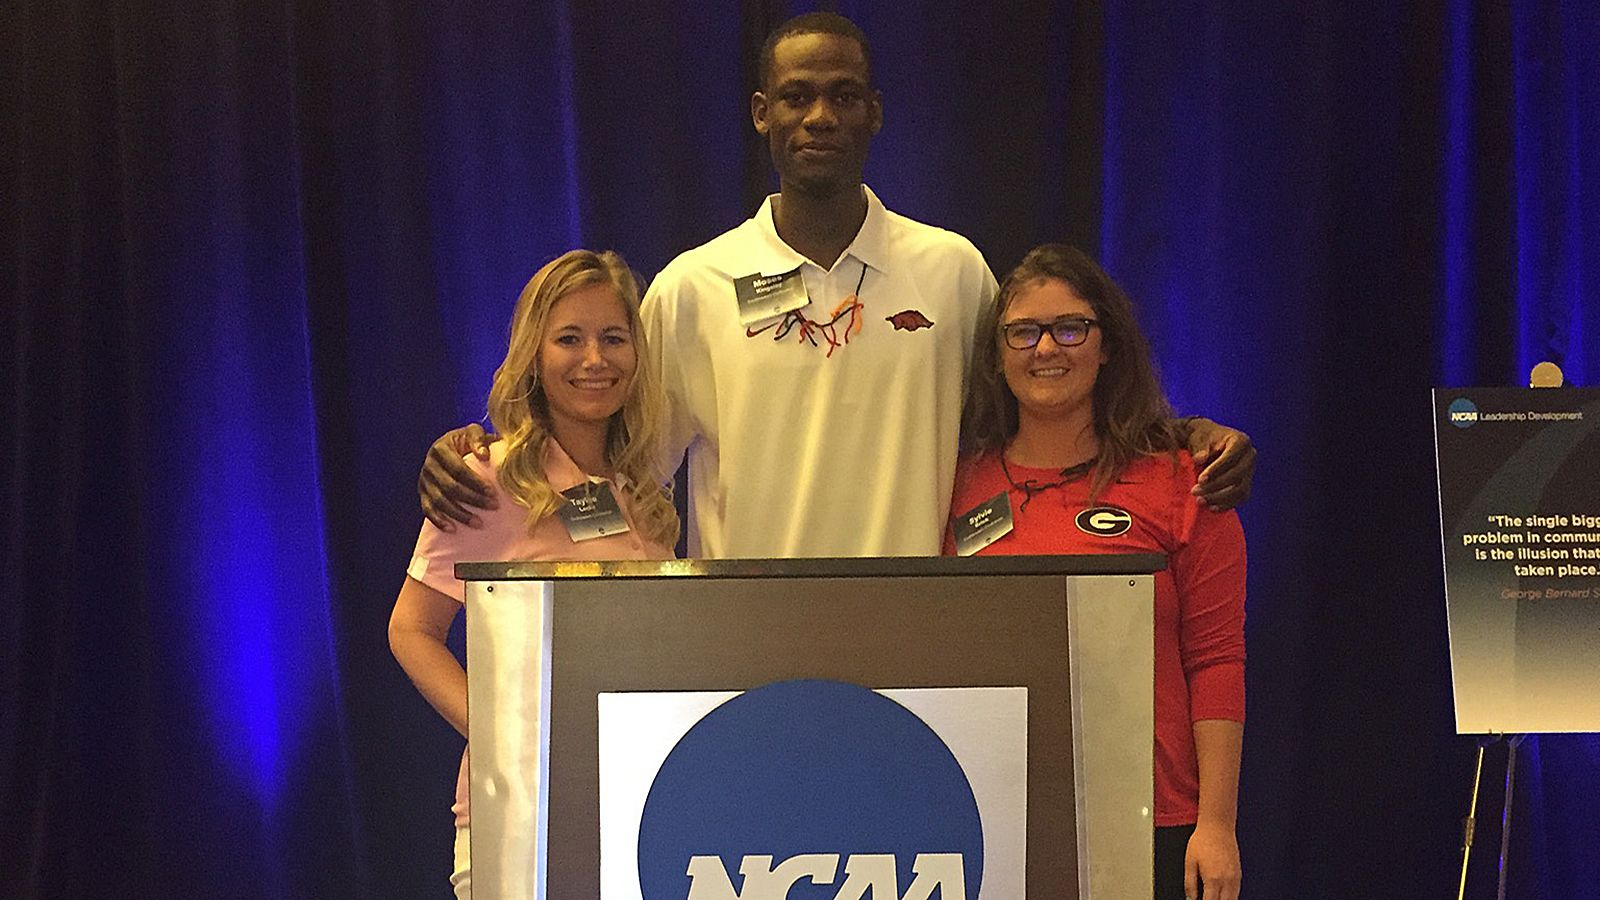 Kingsley, Brick participate in NCAA student-athlete forum